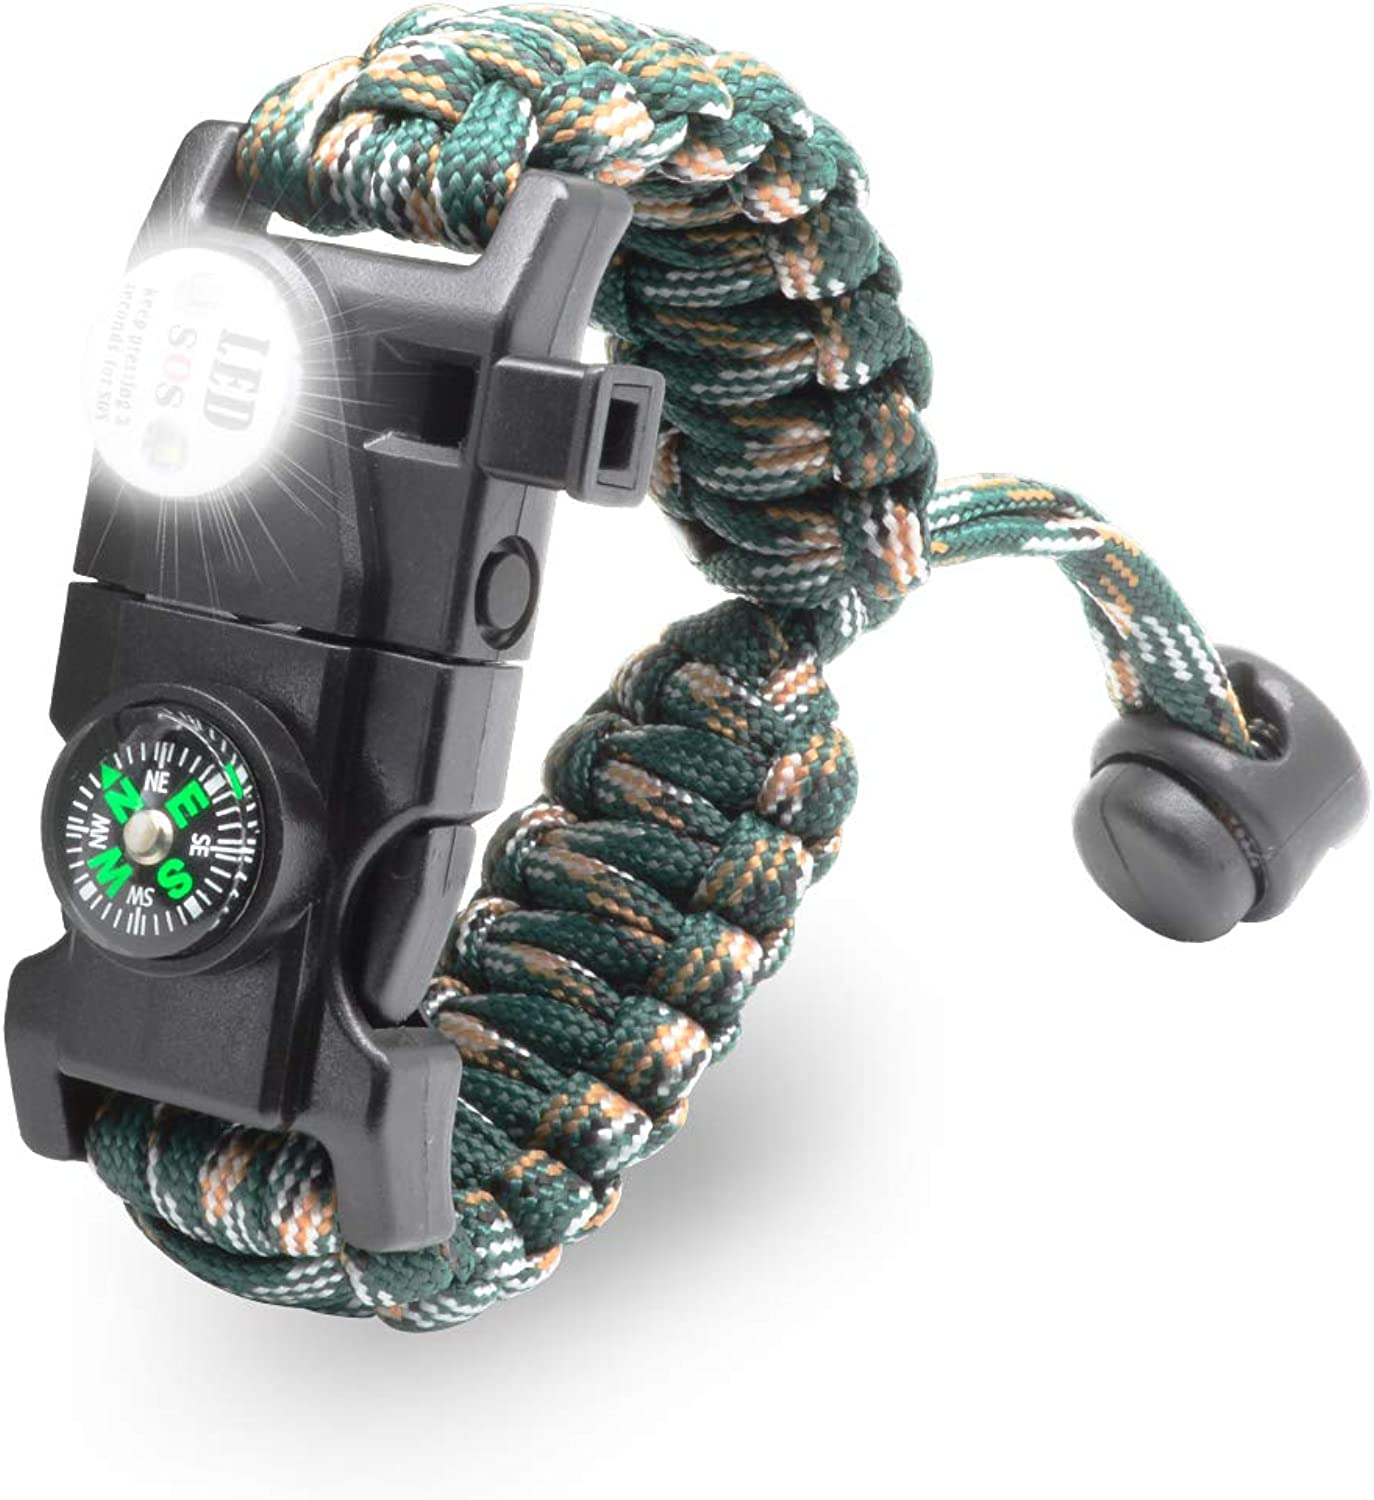 LeMotech 20 in 1 Adjustable Paracord Survival Bracelet, Tactical Emergency Gear Kit Includes SOS LED Flashlight, Compass, Rescue Whistle and Fire StarterOutdoor Hiking Camping